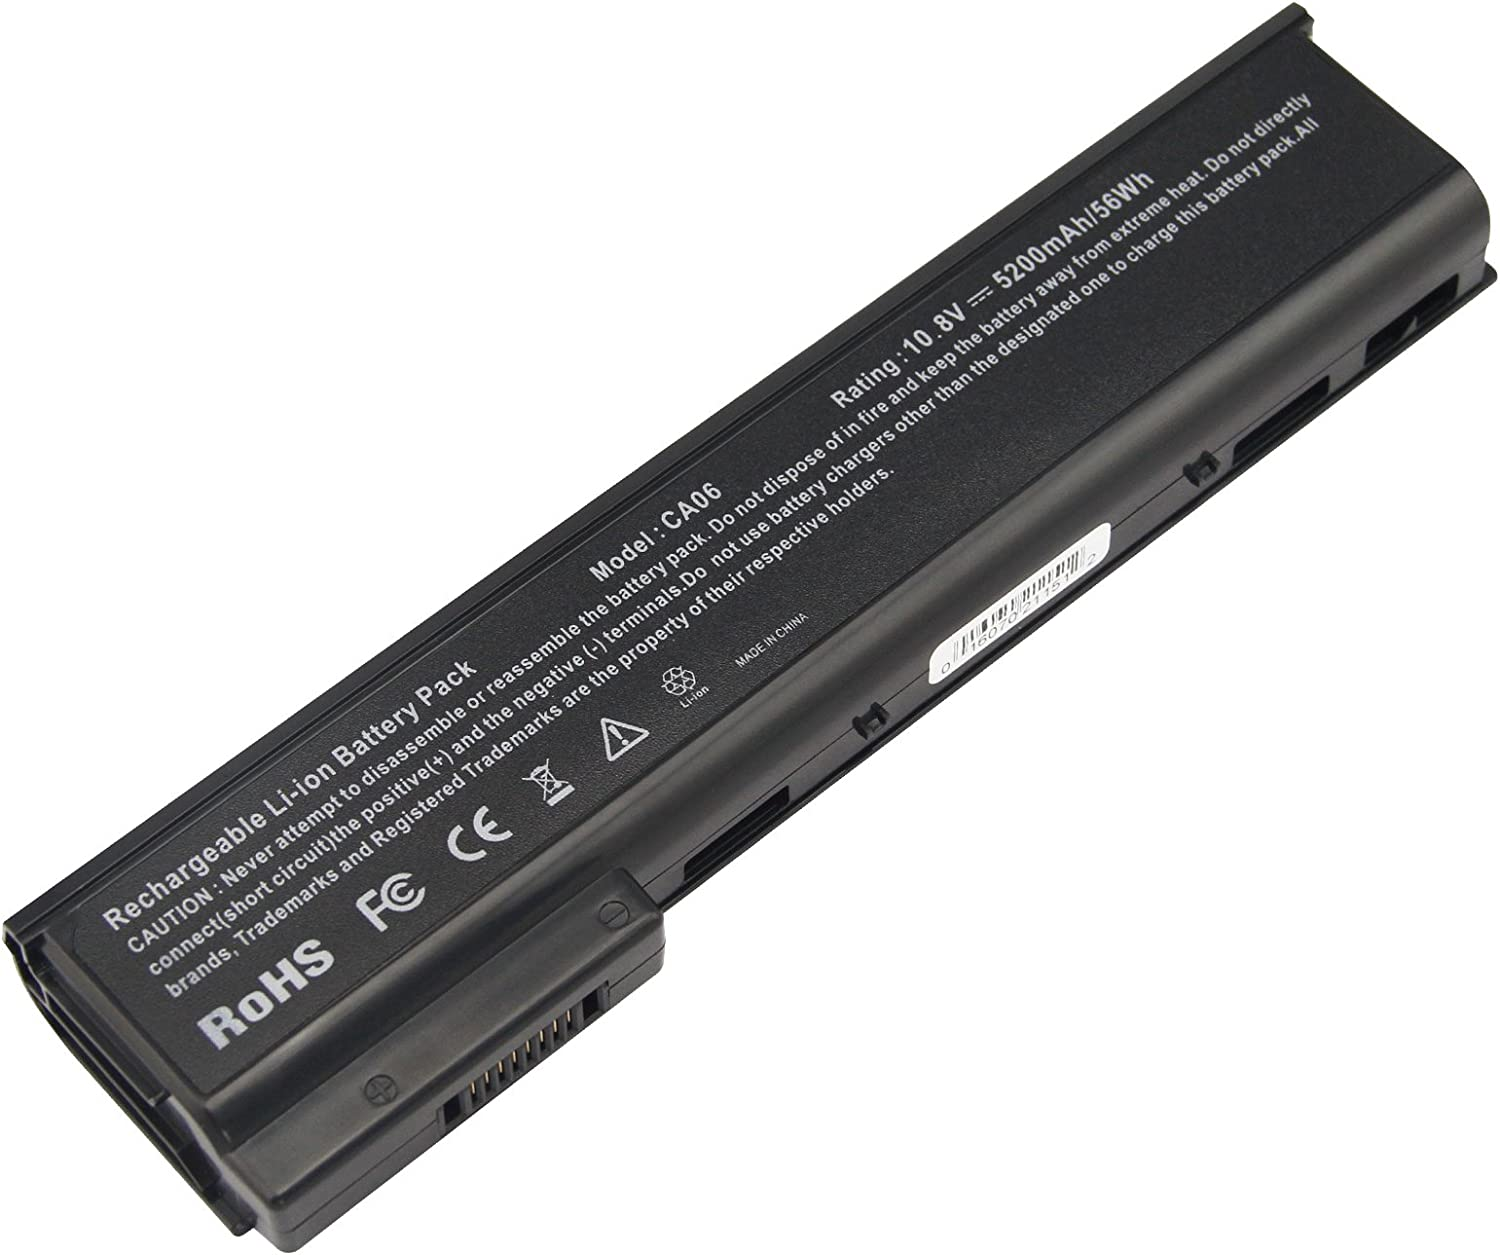 Futurebatt Laptop Notebook Battery for HP ProBook 640 645 650 655 G0 G1 Series, P/N: CA06 CA06XL HSTNN-DB4Y HSTNN-LB4Z HSTNN-LB4X HSTNN-LB4Y HSTNN-LP4Z, 5200mAh/10.8V/6-Cells